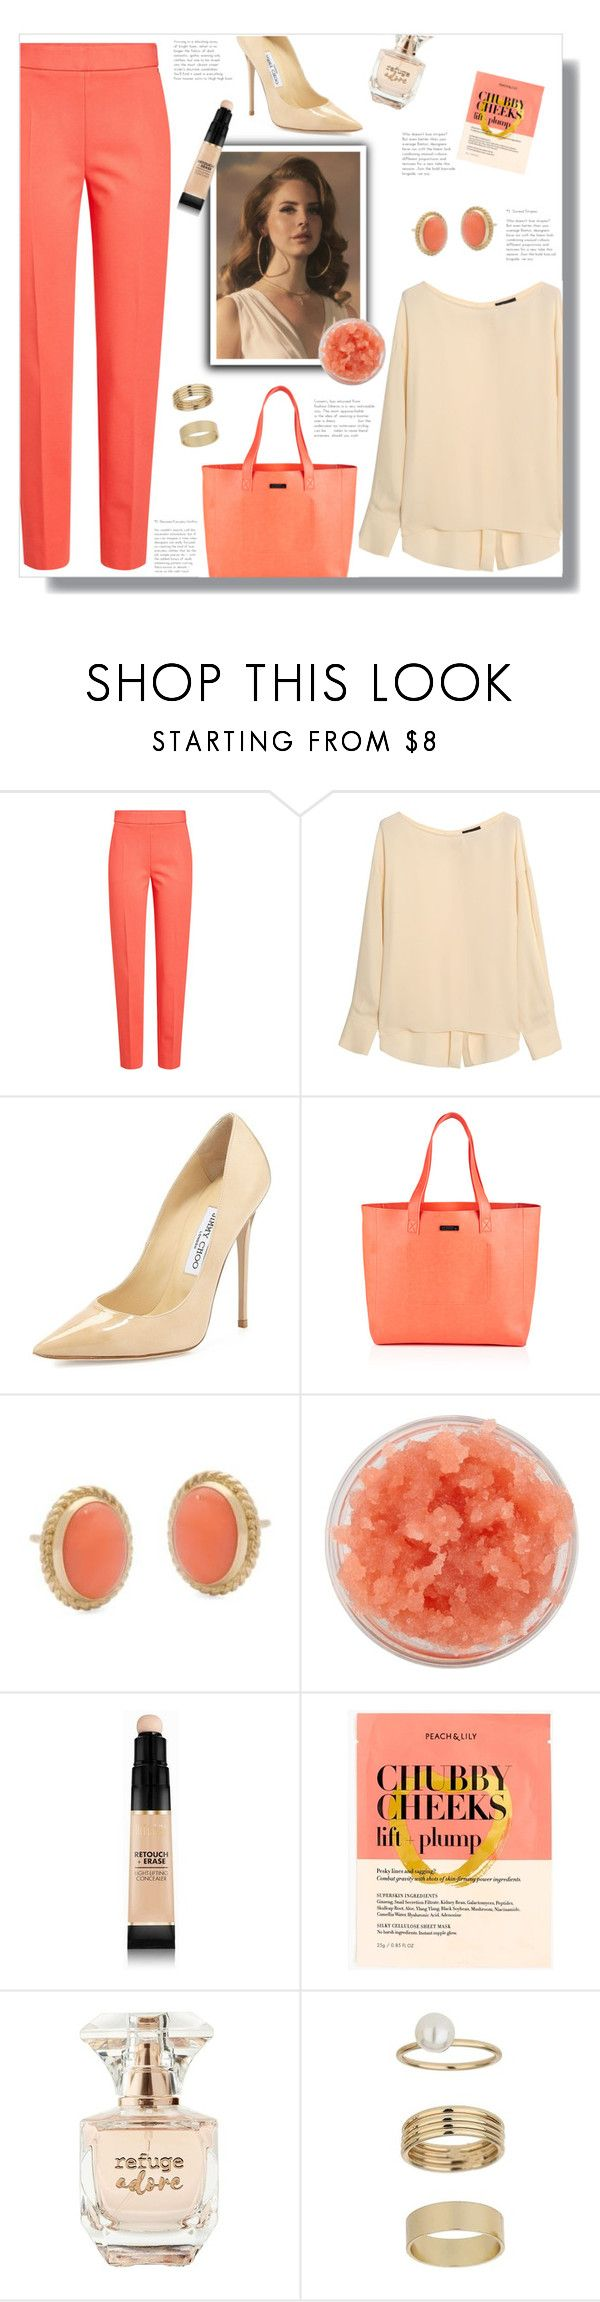 """""""How to wear a Tailored Trouser!"""" by disco-mermaid ❤ liked on Polyvore featuring MaxMara, Theory, Jimmy Choo, Superdry, Ross-Simons, Sara Happ, Milani, J.Crew, Refuge and Miss Selfridge"""